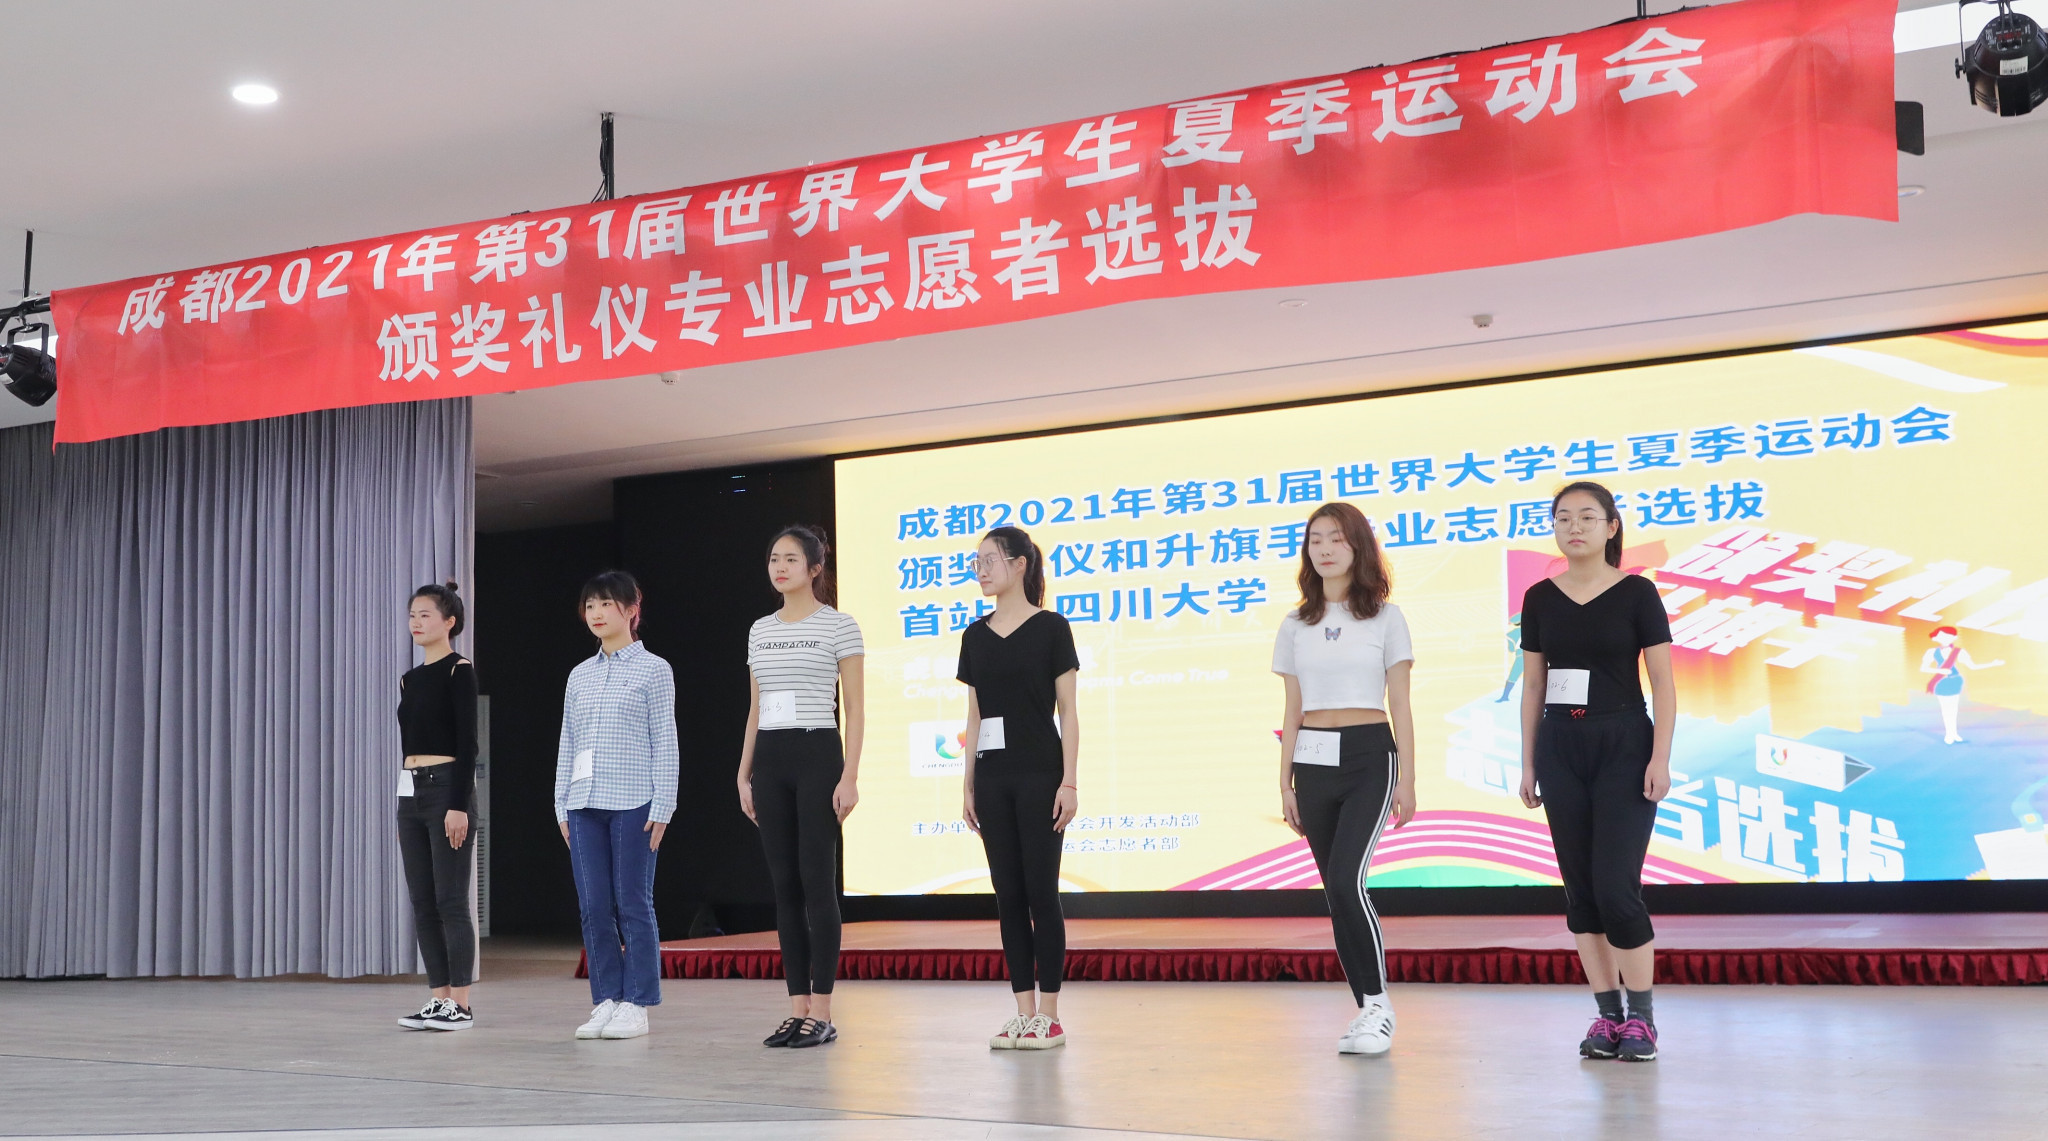 Chengdu 2021 begins selecting volunteers for Summer World University Games ceremonies